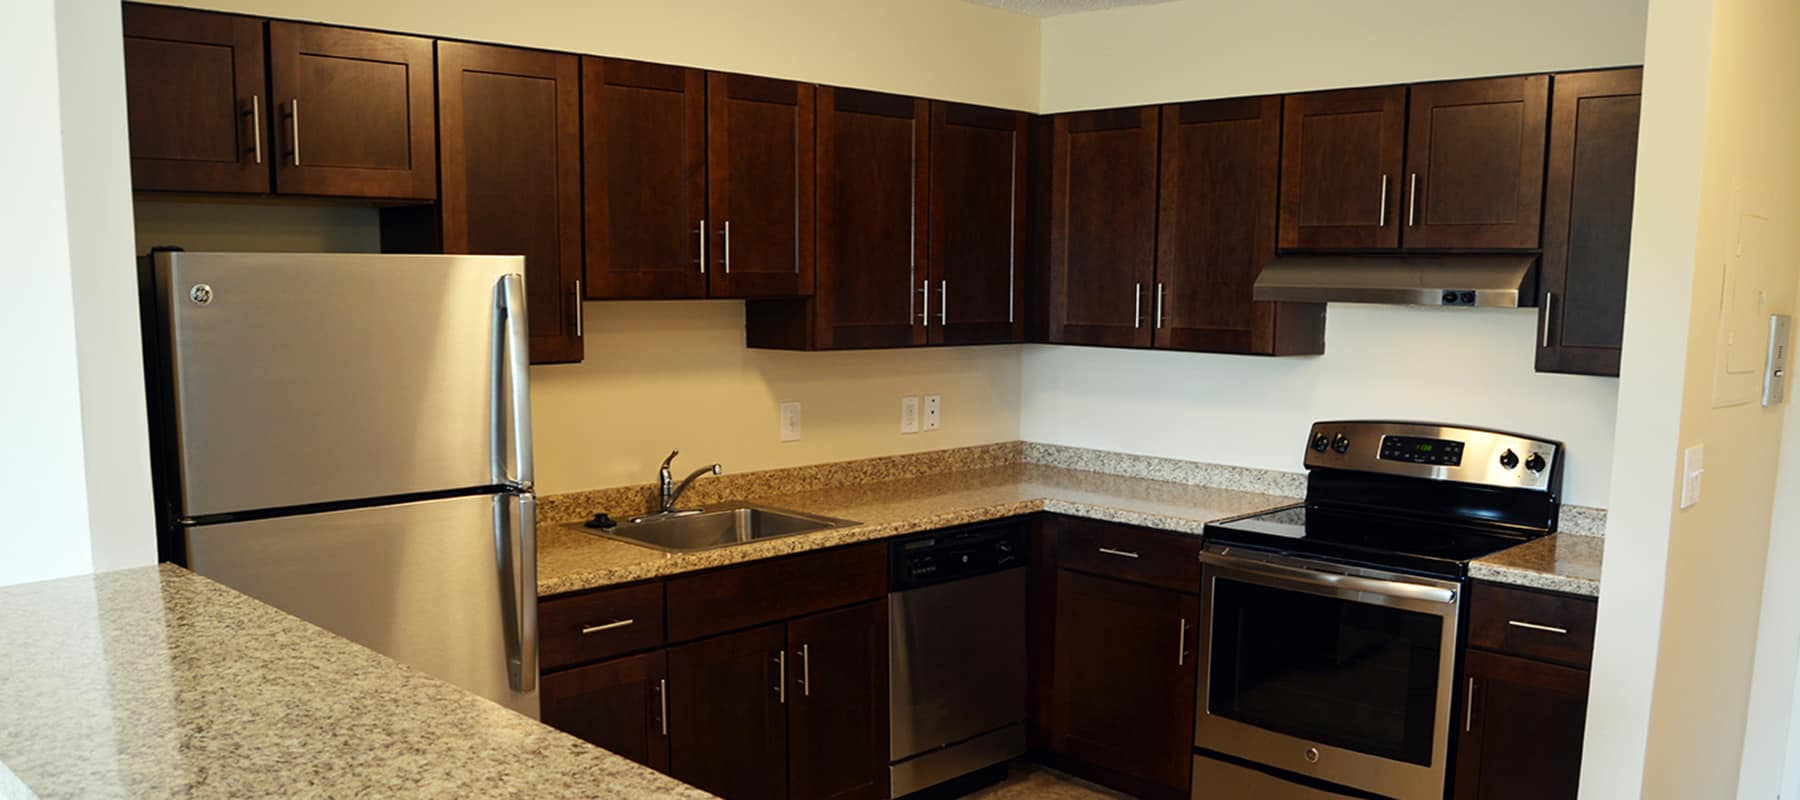 Multi family kitchen cabinets wholesale pricing the norfolk companies Kitchen cabinet companies